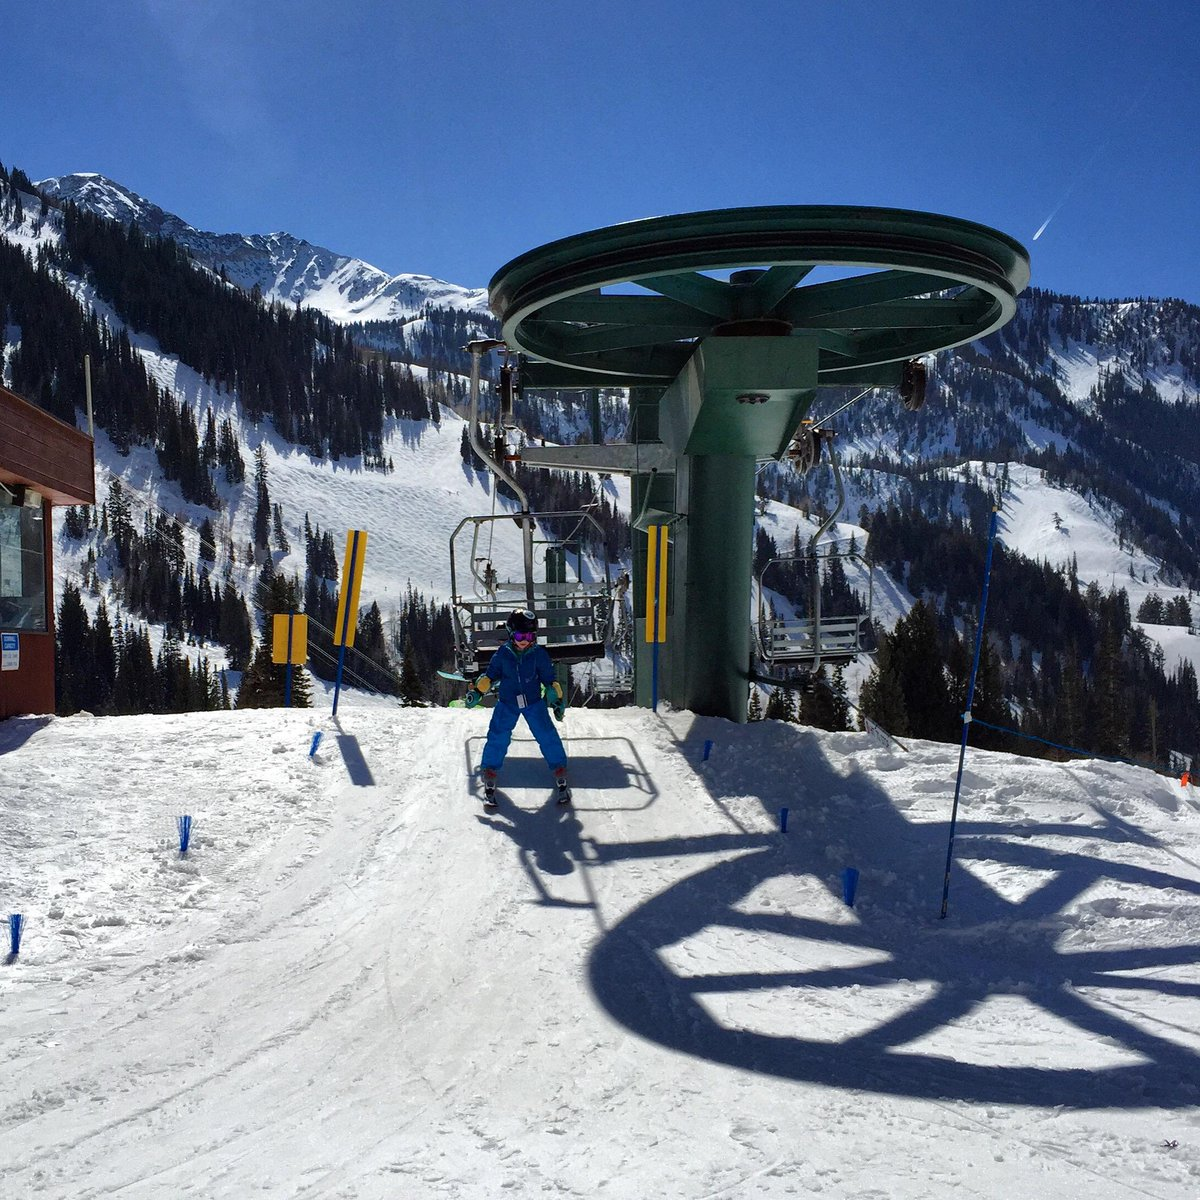 My 5 year old rode the chairlift alone for the first time today... Thanks @Snowbird #SkiersRiteOfPassage #Snowmamas http://t.co/r5PSrfI06t